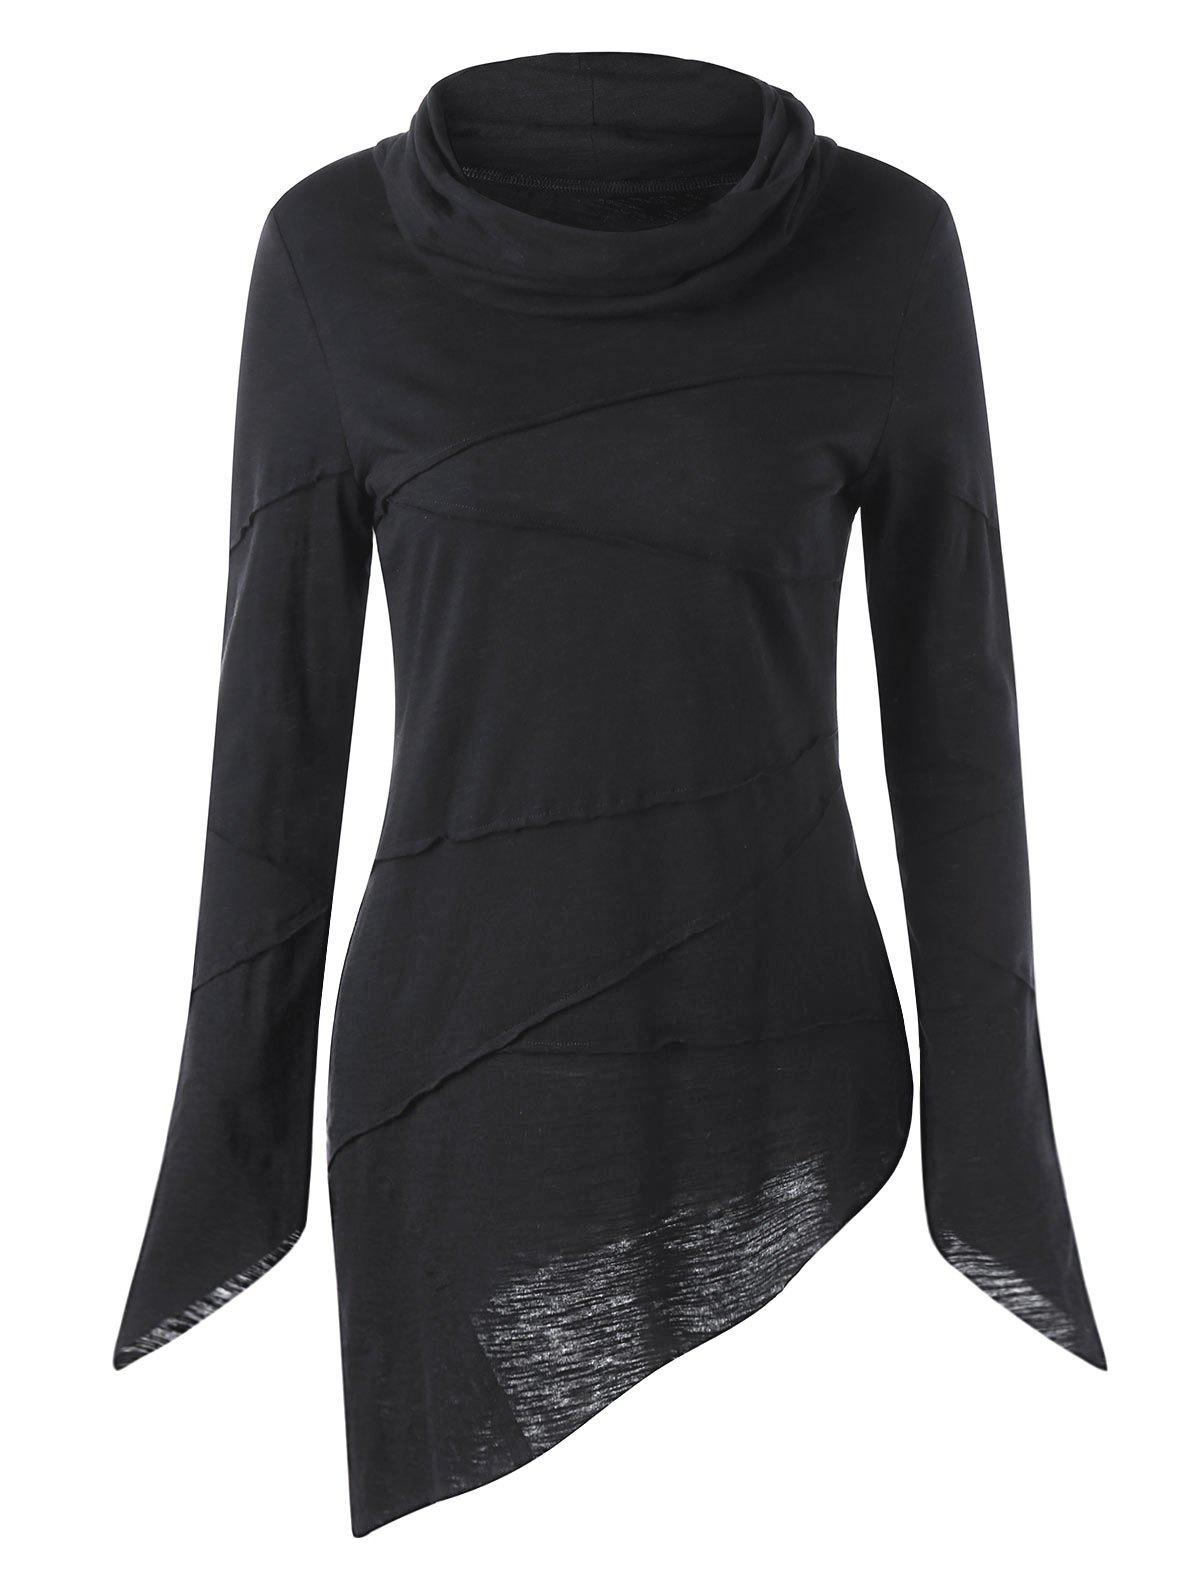 Heaps Collar Long Sleeve Asymmetric T-shirtWOMEN<br><br>Size: L; Color: BLACK; Material: Cotton,Spandex; Shirt Length: Long; Sleeve Length: Full; Collar: Heaps Collar; Style: Fashion; Pattern Type: Solid; Season: Fall,Spring; Weight: 0.2700kg; Package Contents: 1 x T-shirt;